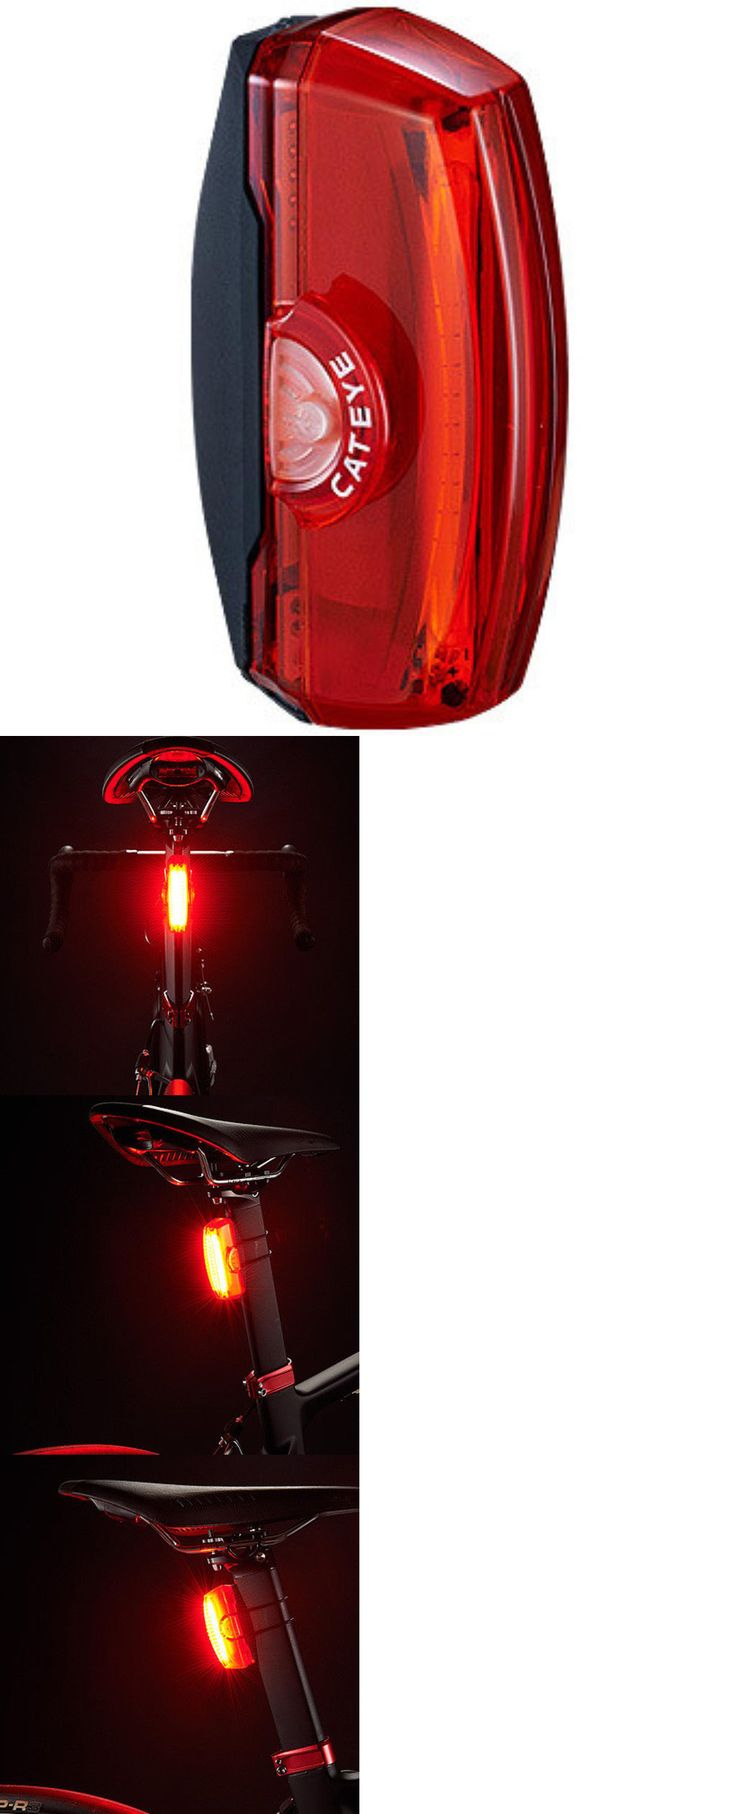 Lights and Reflectors 22689: Cateye Red Rapid X3 Bike Light 150 Lumens Rear Tl-Ld720-R Rechargeable Batteries -> BUY IT NOW ONLY: $60 on eBay!